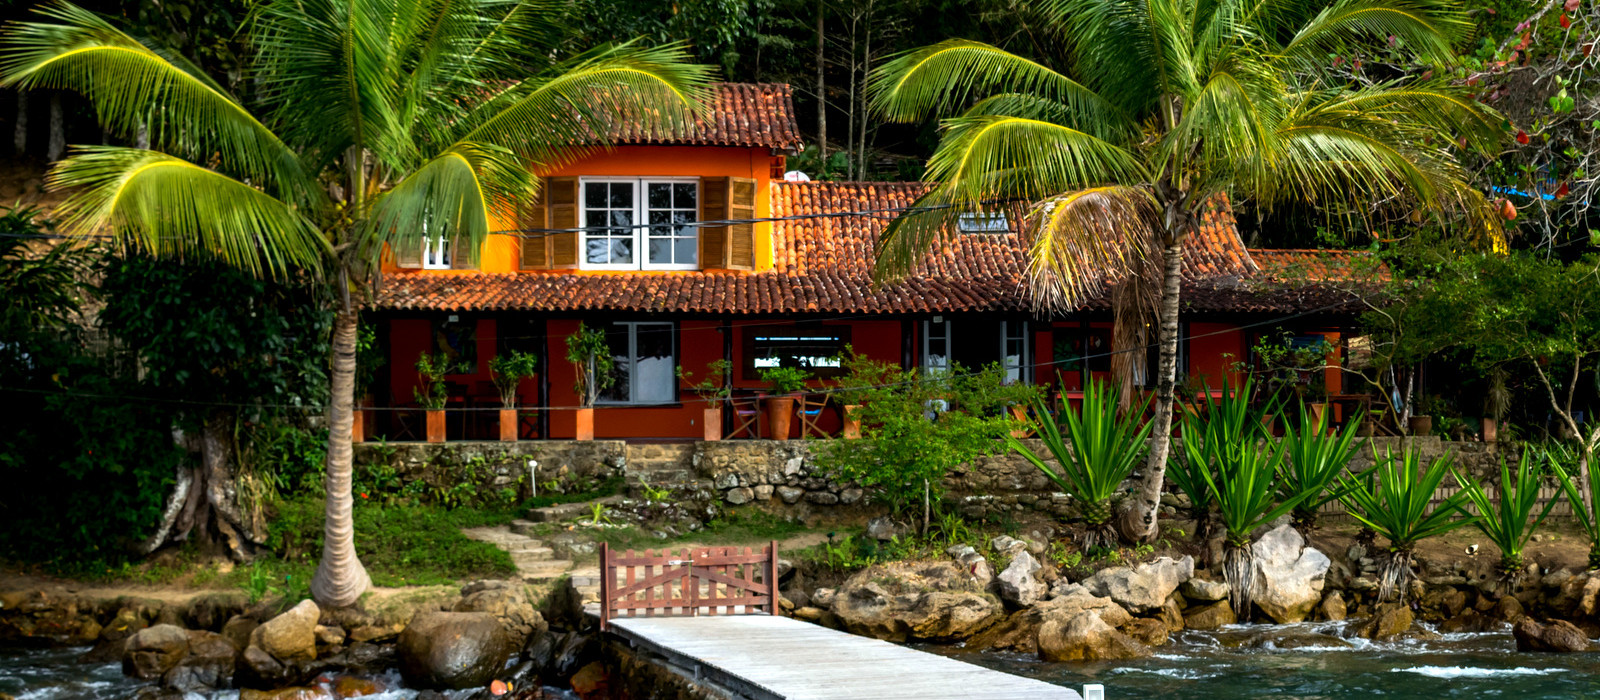 Hotel Sagu Mini Resort Brazil